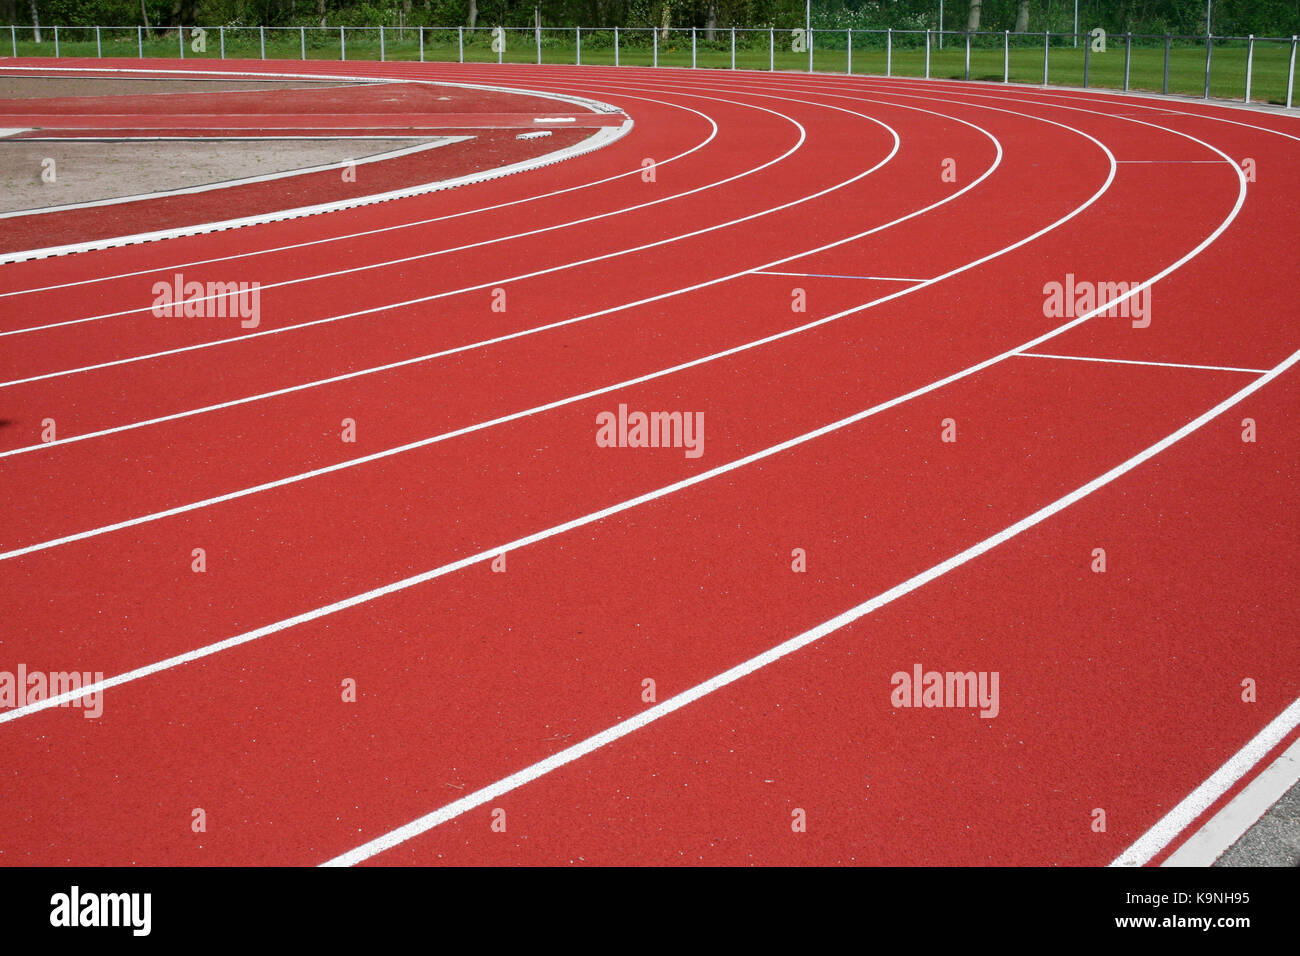 Bend of an empty athletics track in a green environment - Stock Image